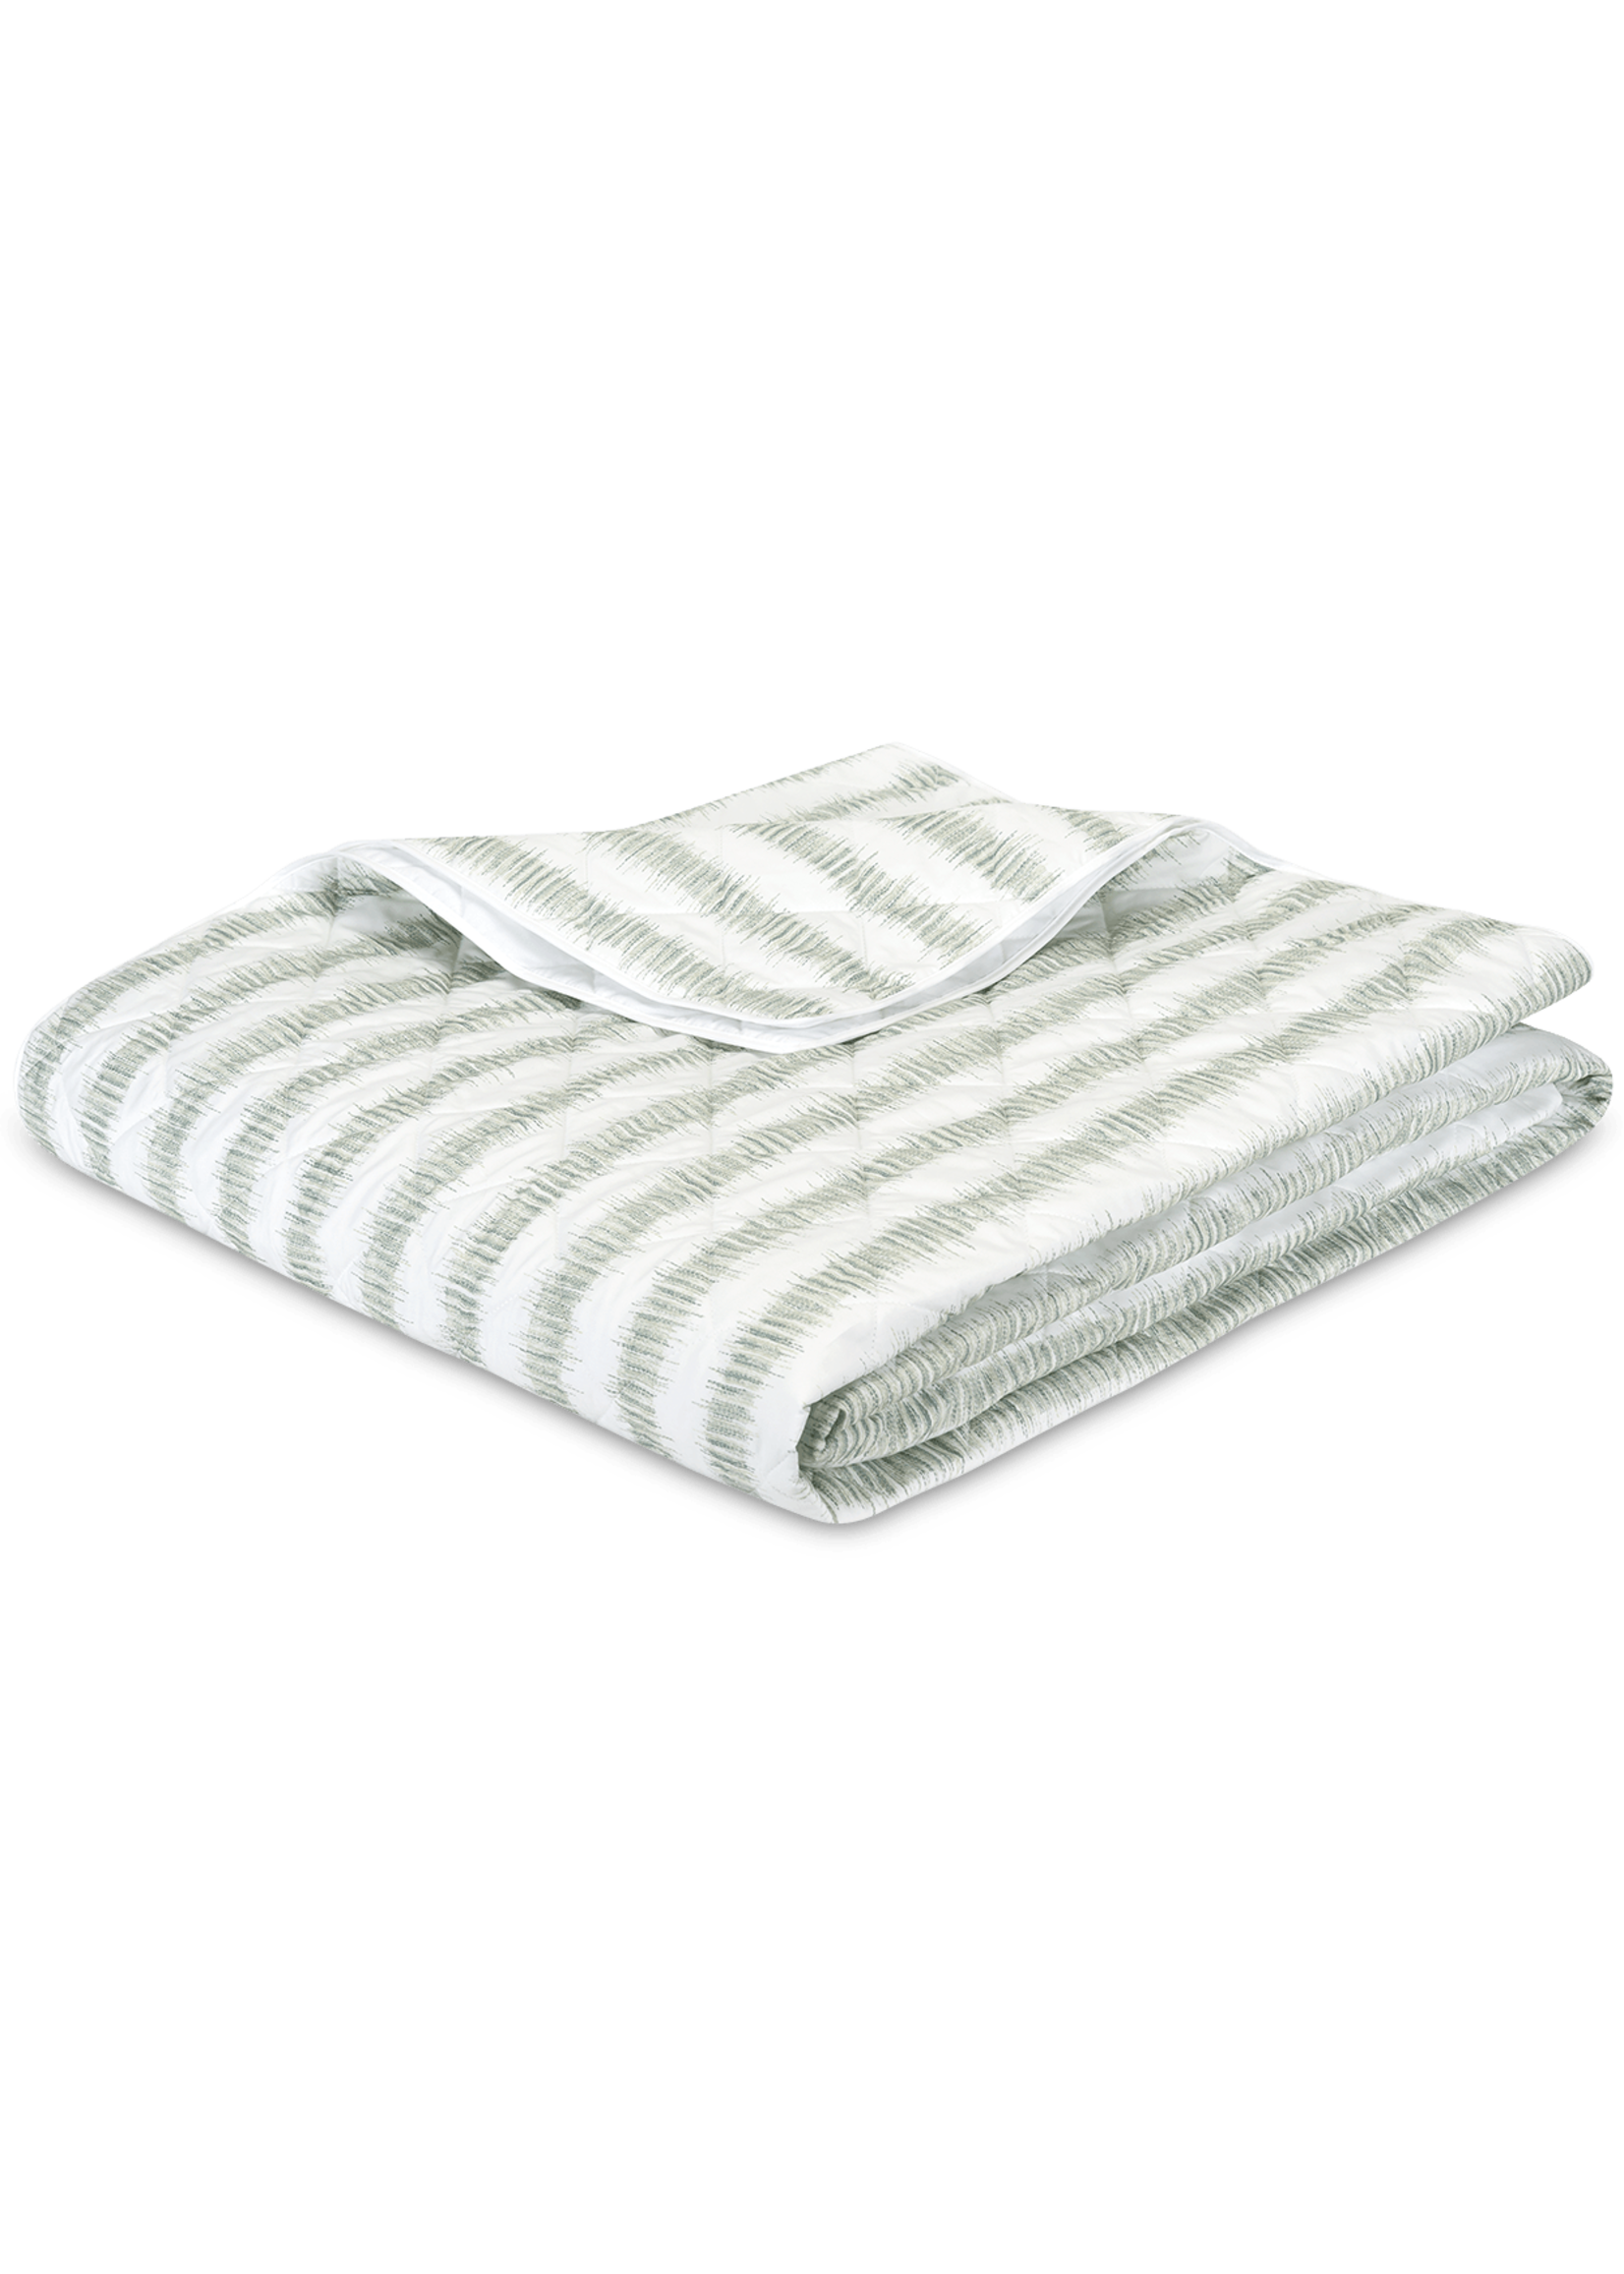 Matouk Attleboro Quilted Collection